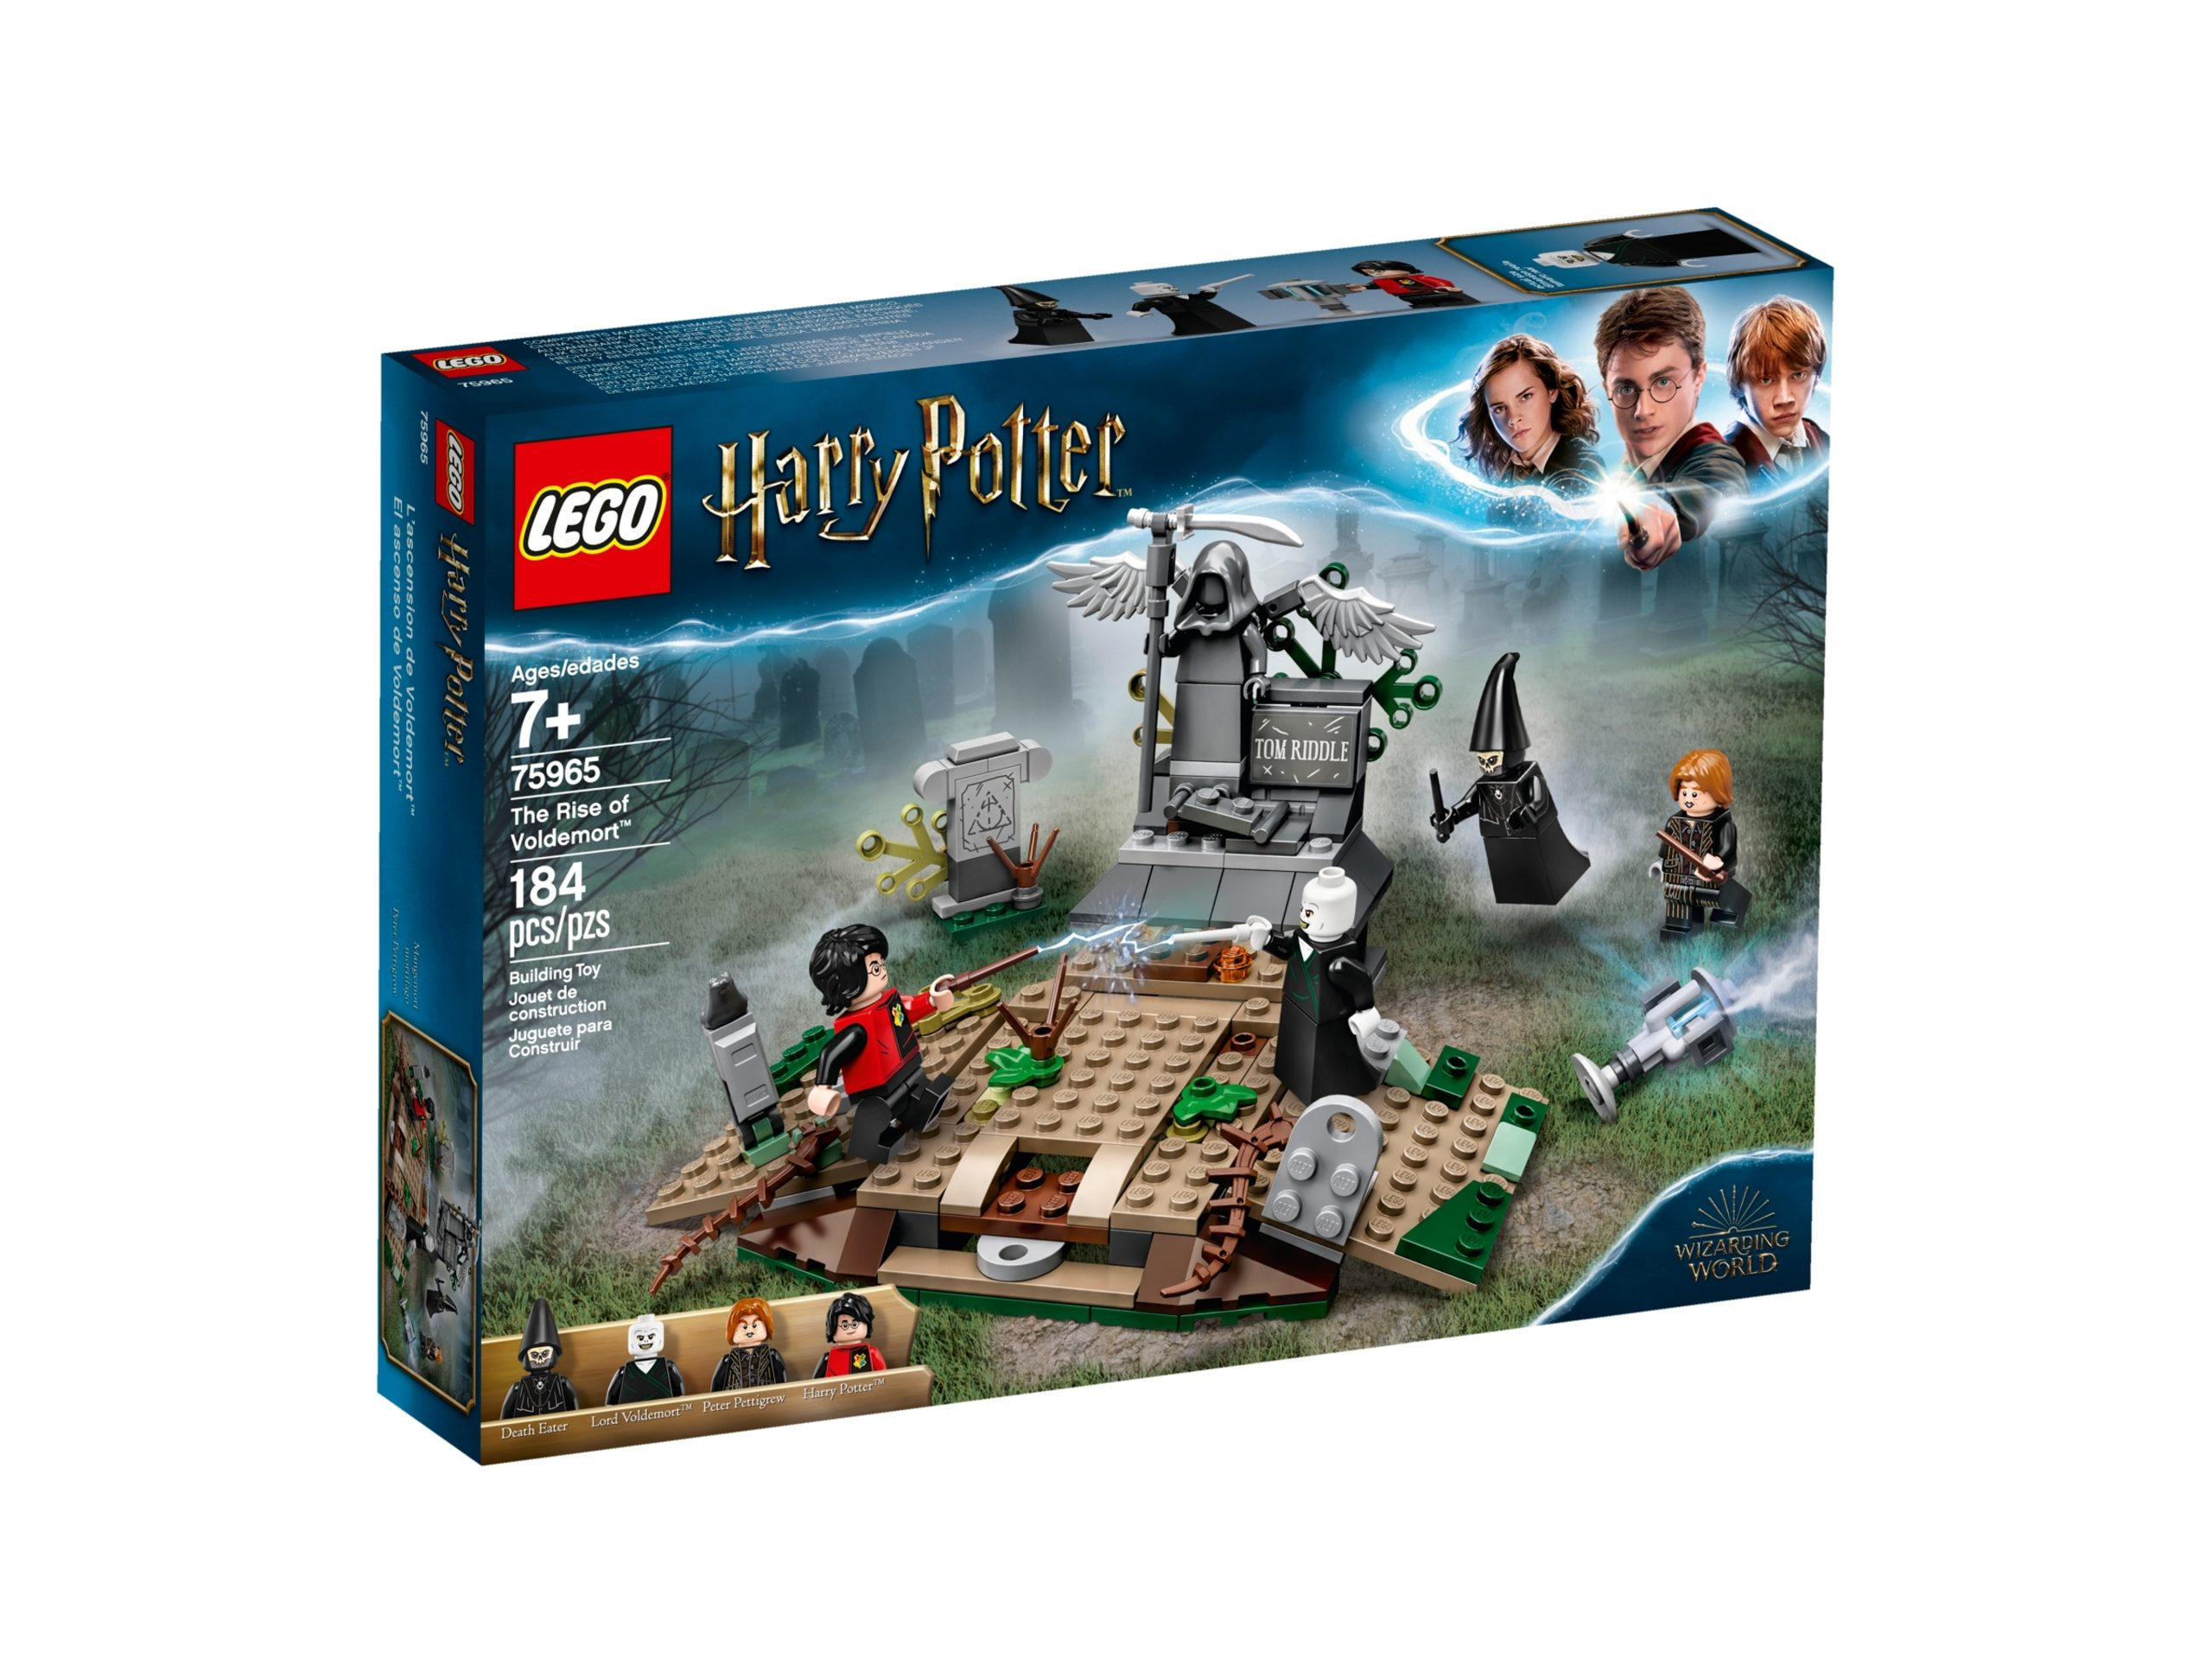 lego 75965 the rise of voldemort scaled